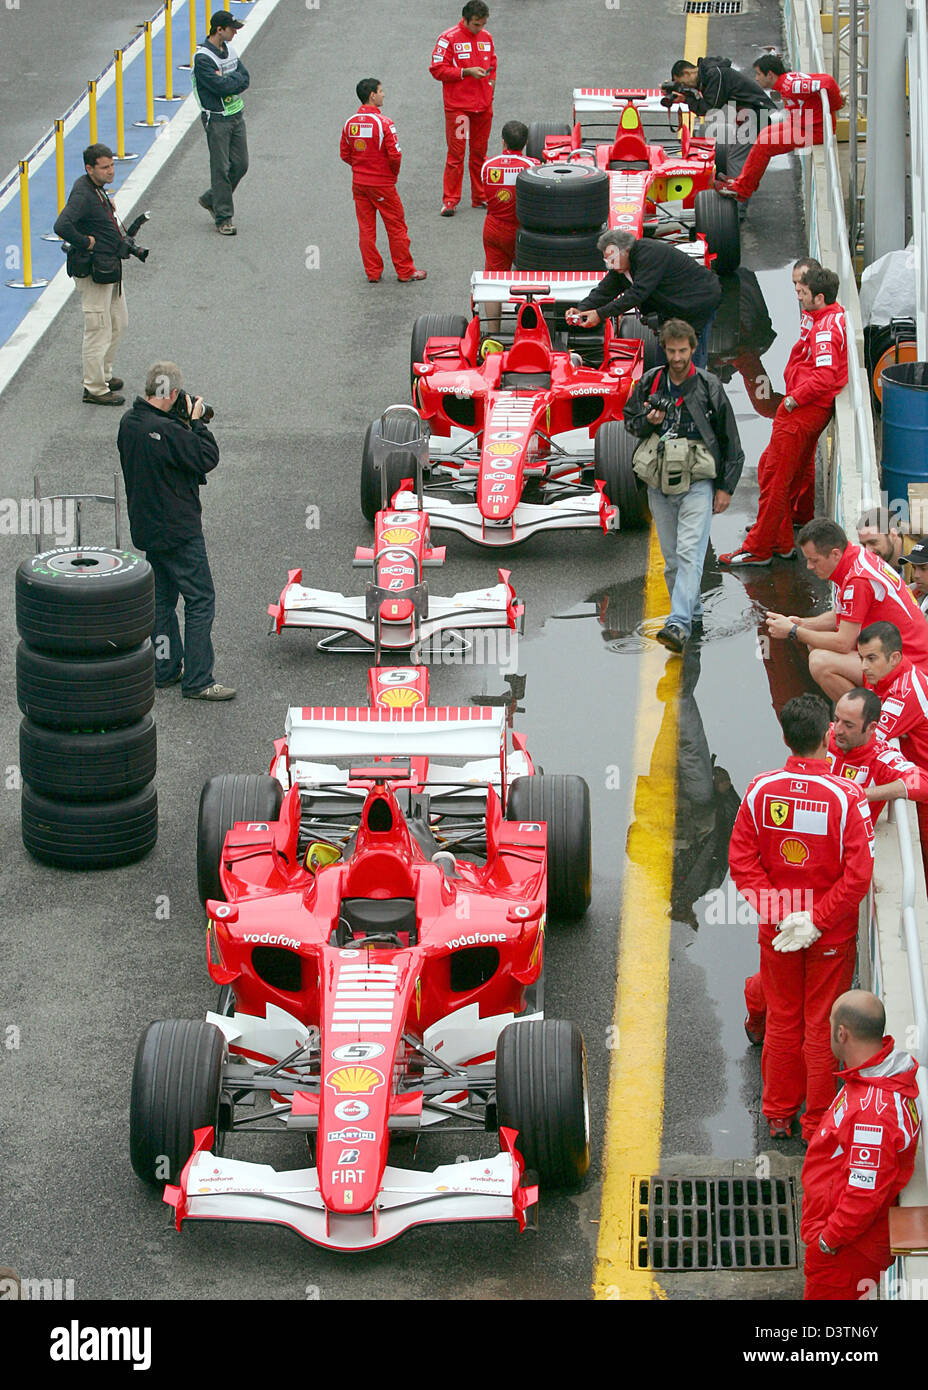 Ferrari Racing Cars Line Up In The Pitlane At The Interlagos Racetrack Near  Sao Paulo, Brazil, Thursday, 19 October 2006. The Brazilian Grand Prix Will  Take ...